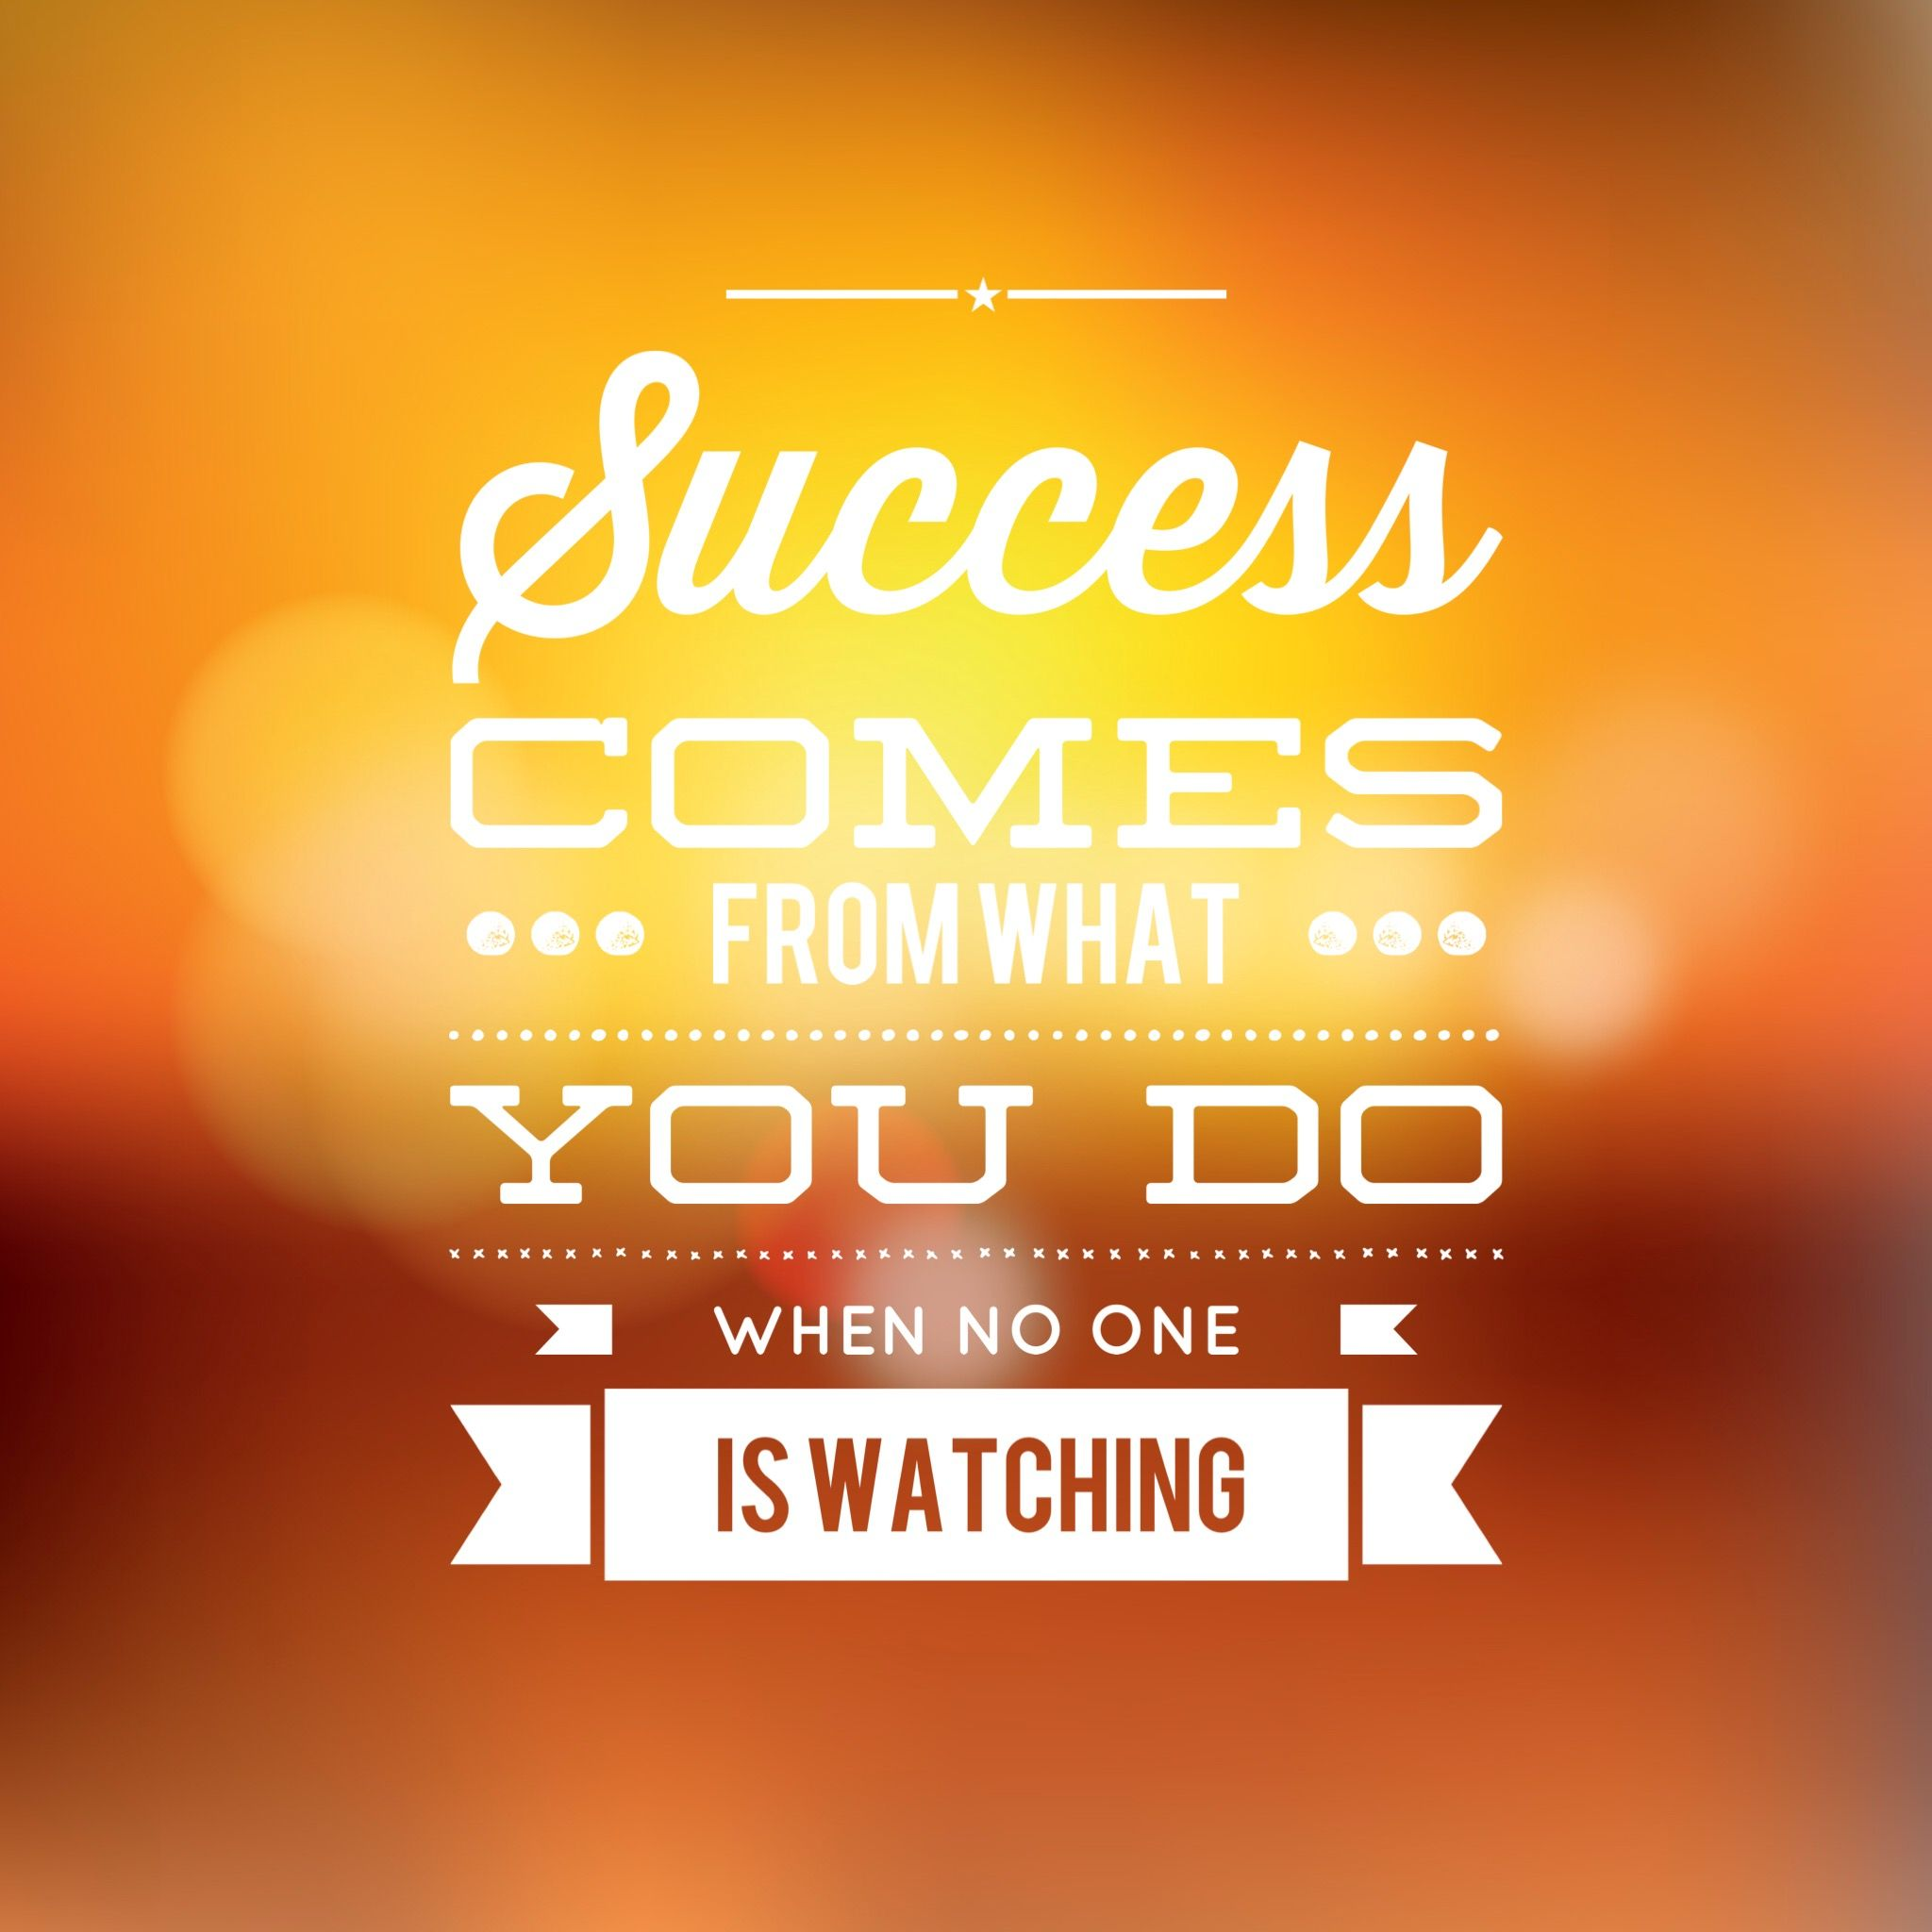 Success comes from what you do when no one is watching ...